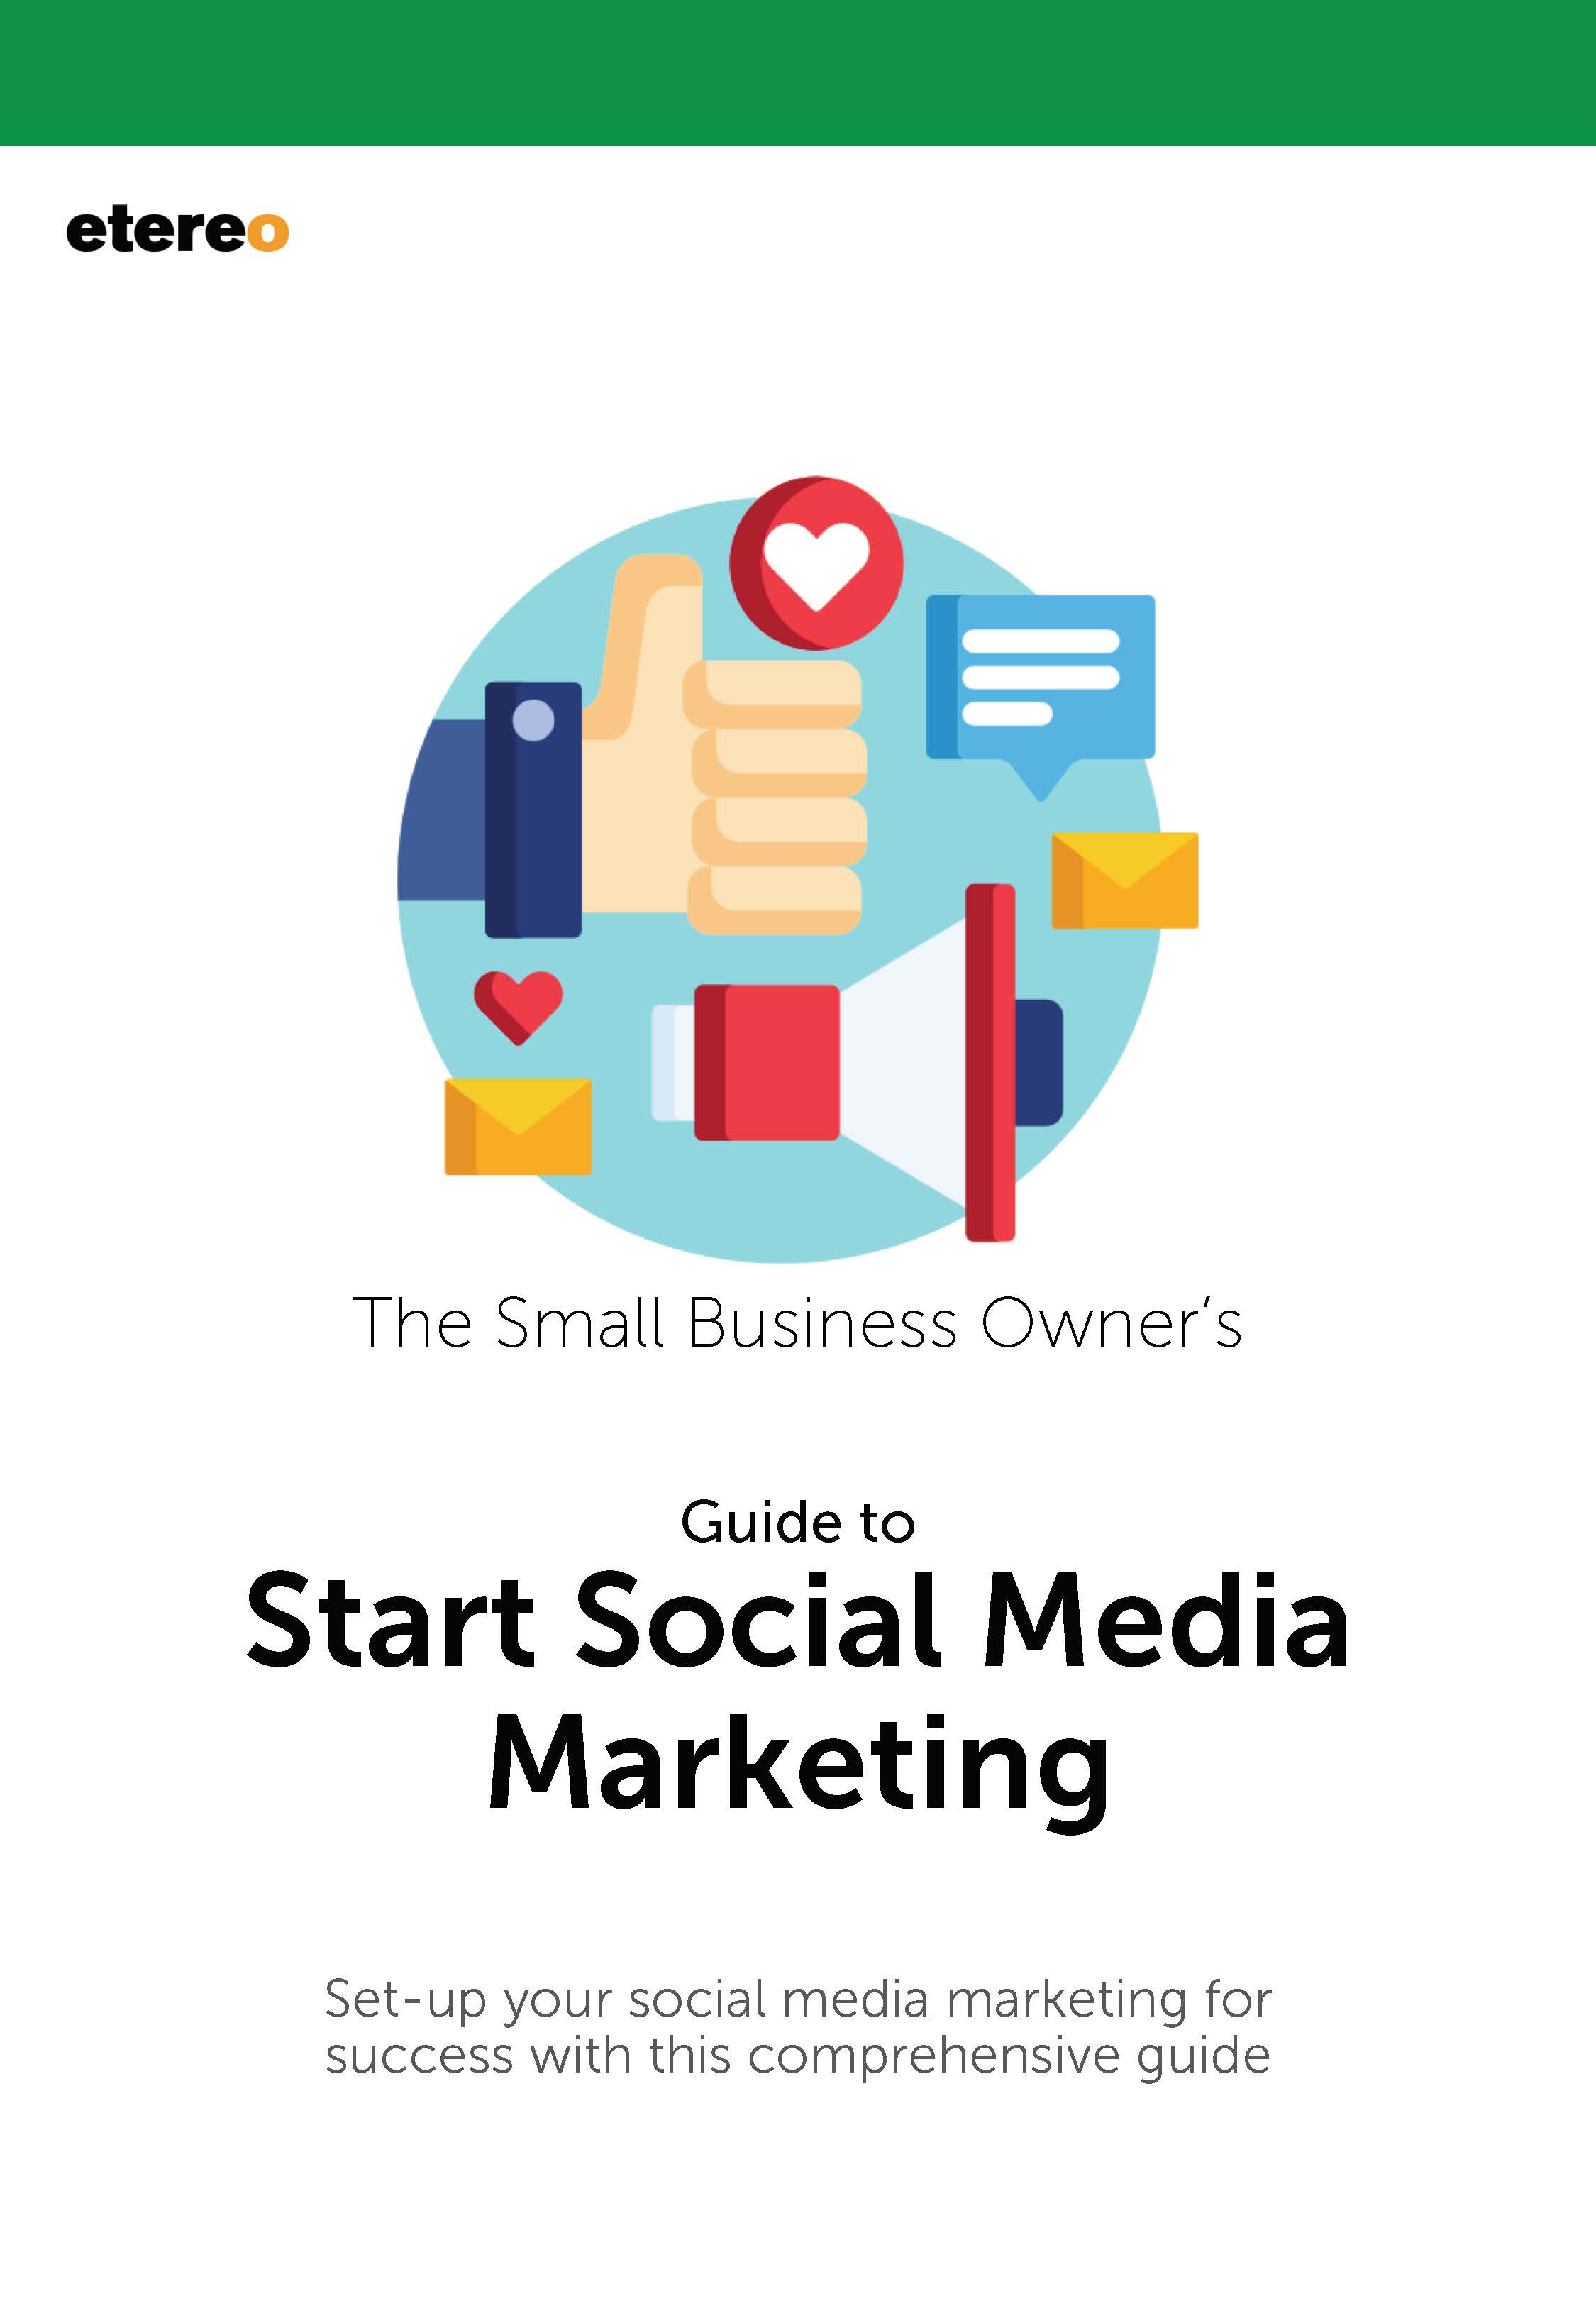 Checklist for business owners to start social media marketing